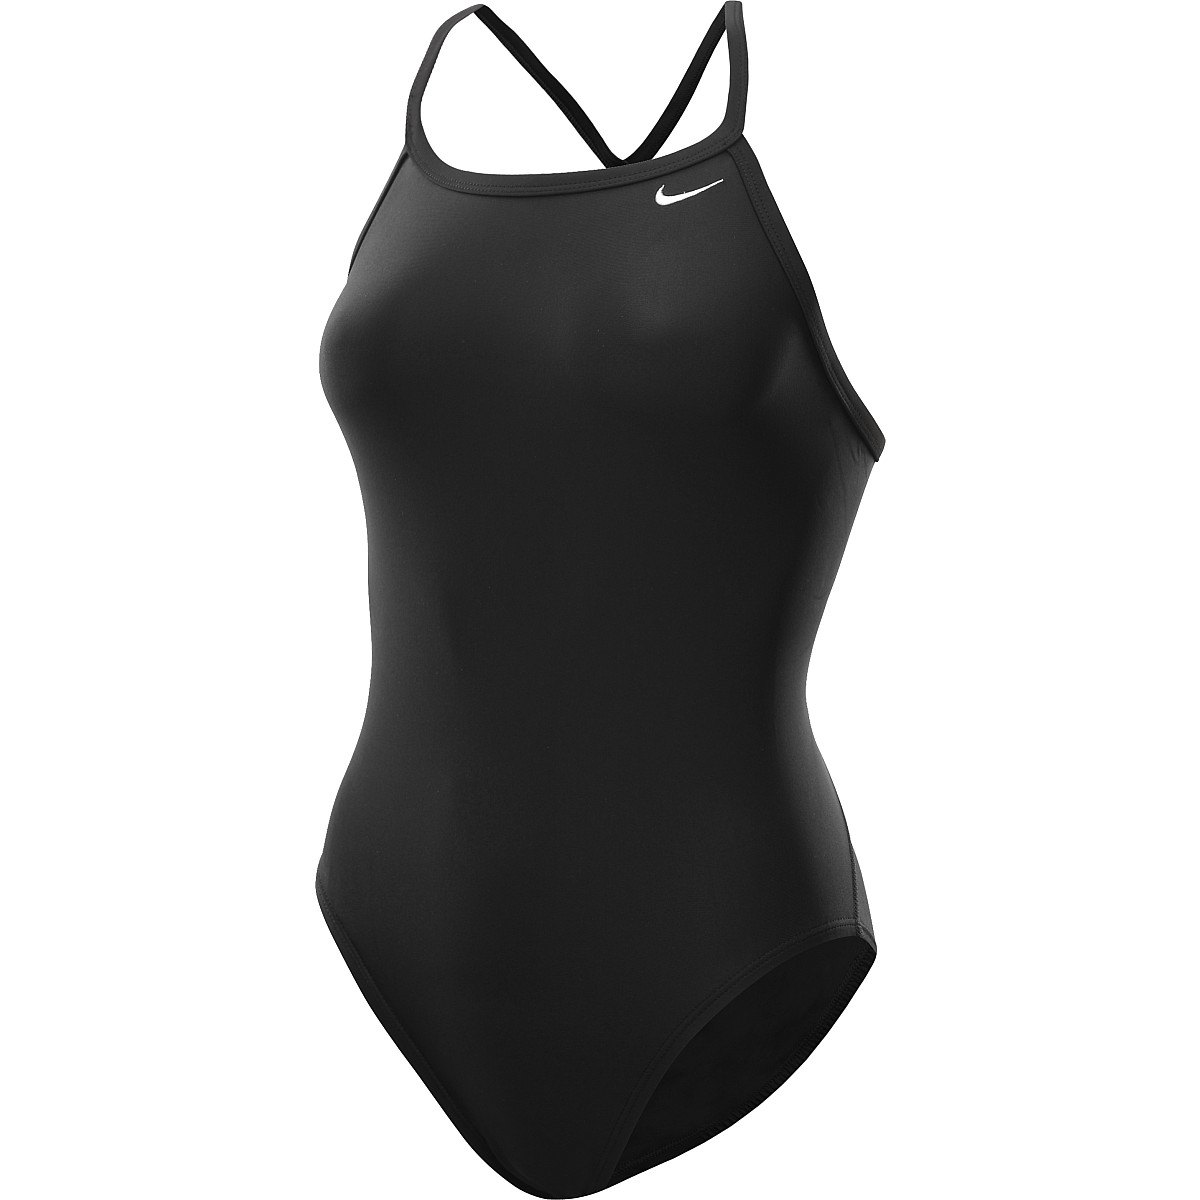 NIKE Women's Core Solid Lingerie Tank One-Piece Swimsuit - SportsAuthority.com